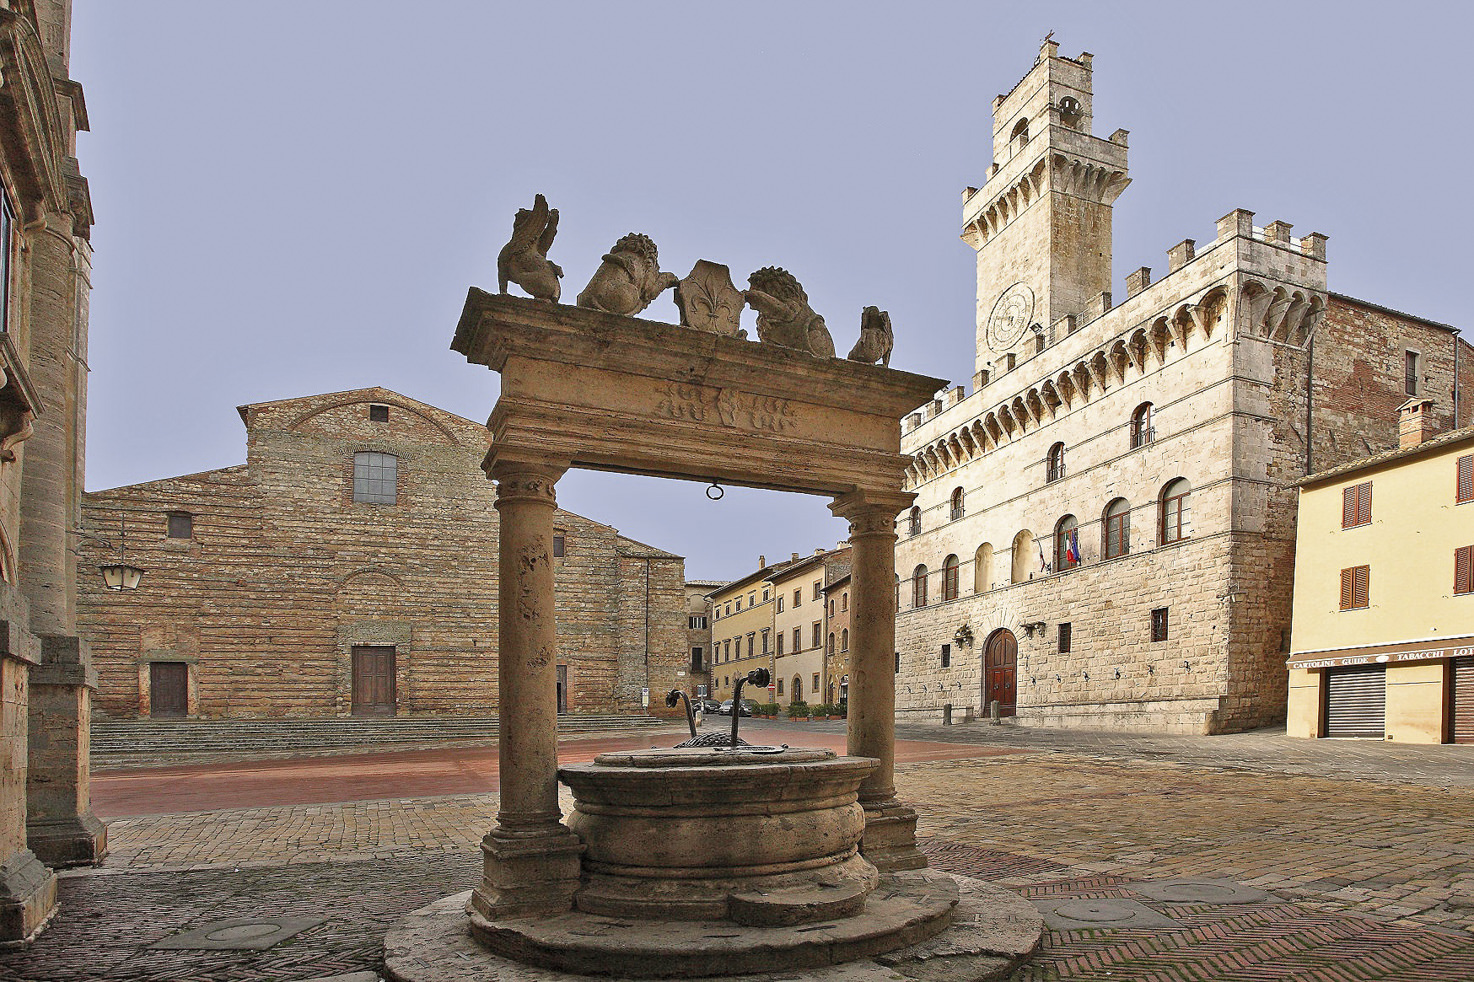 Medieval town of Montepulciano